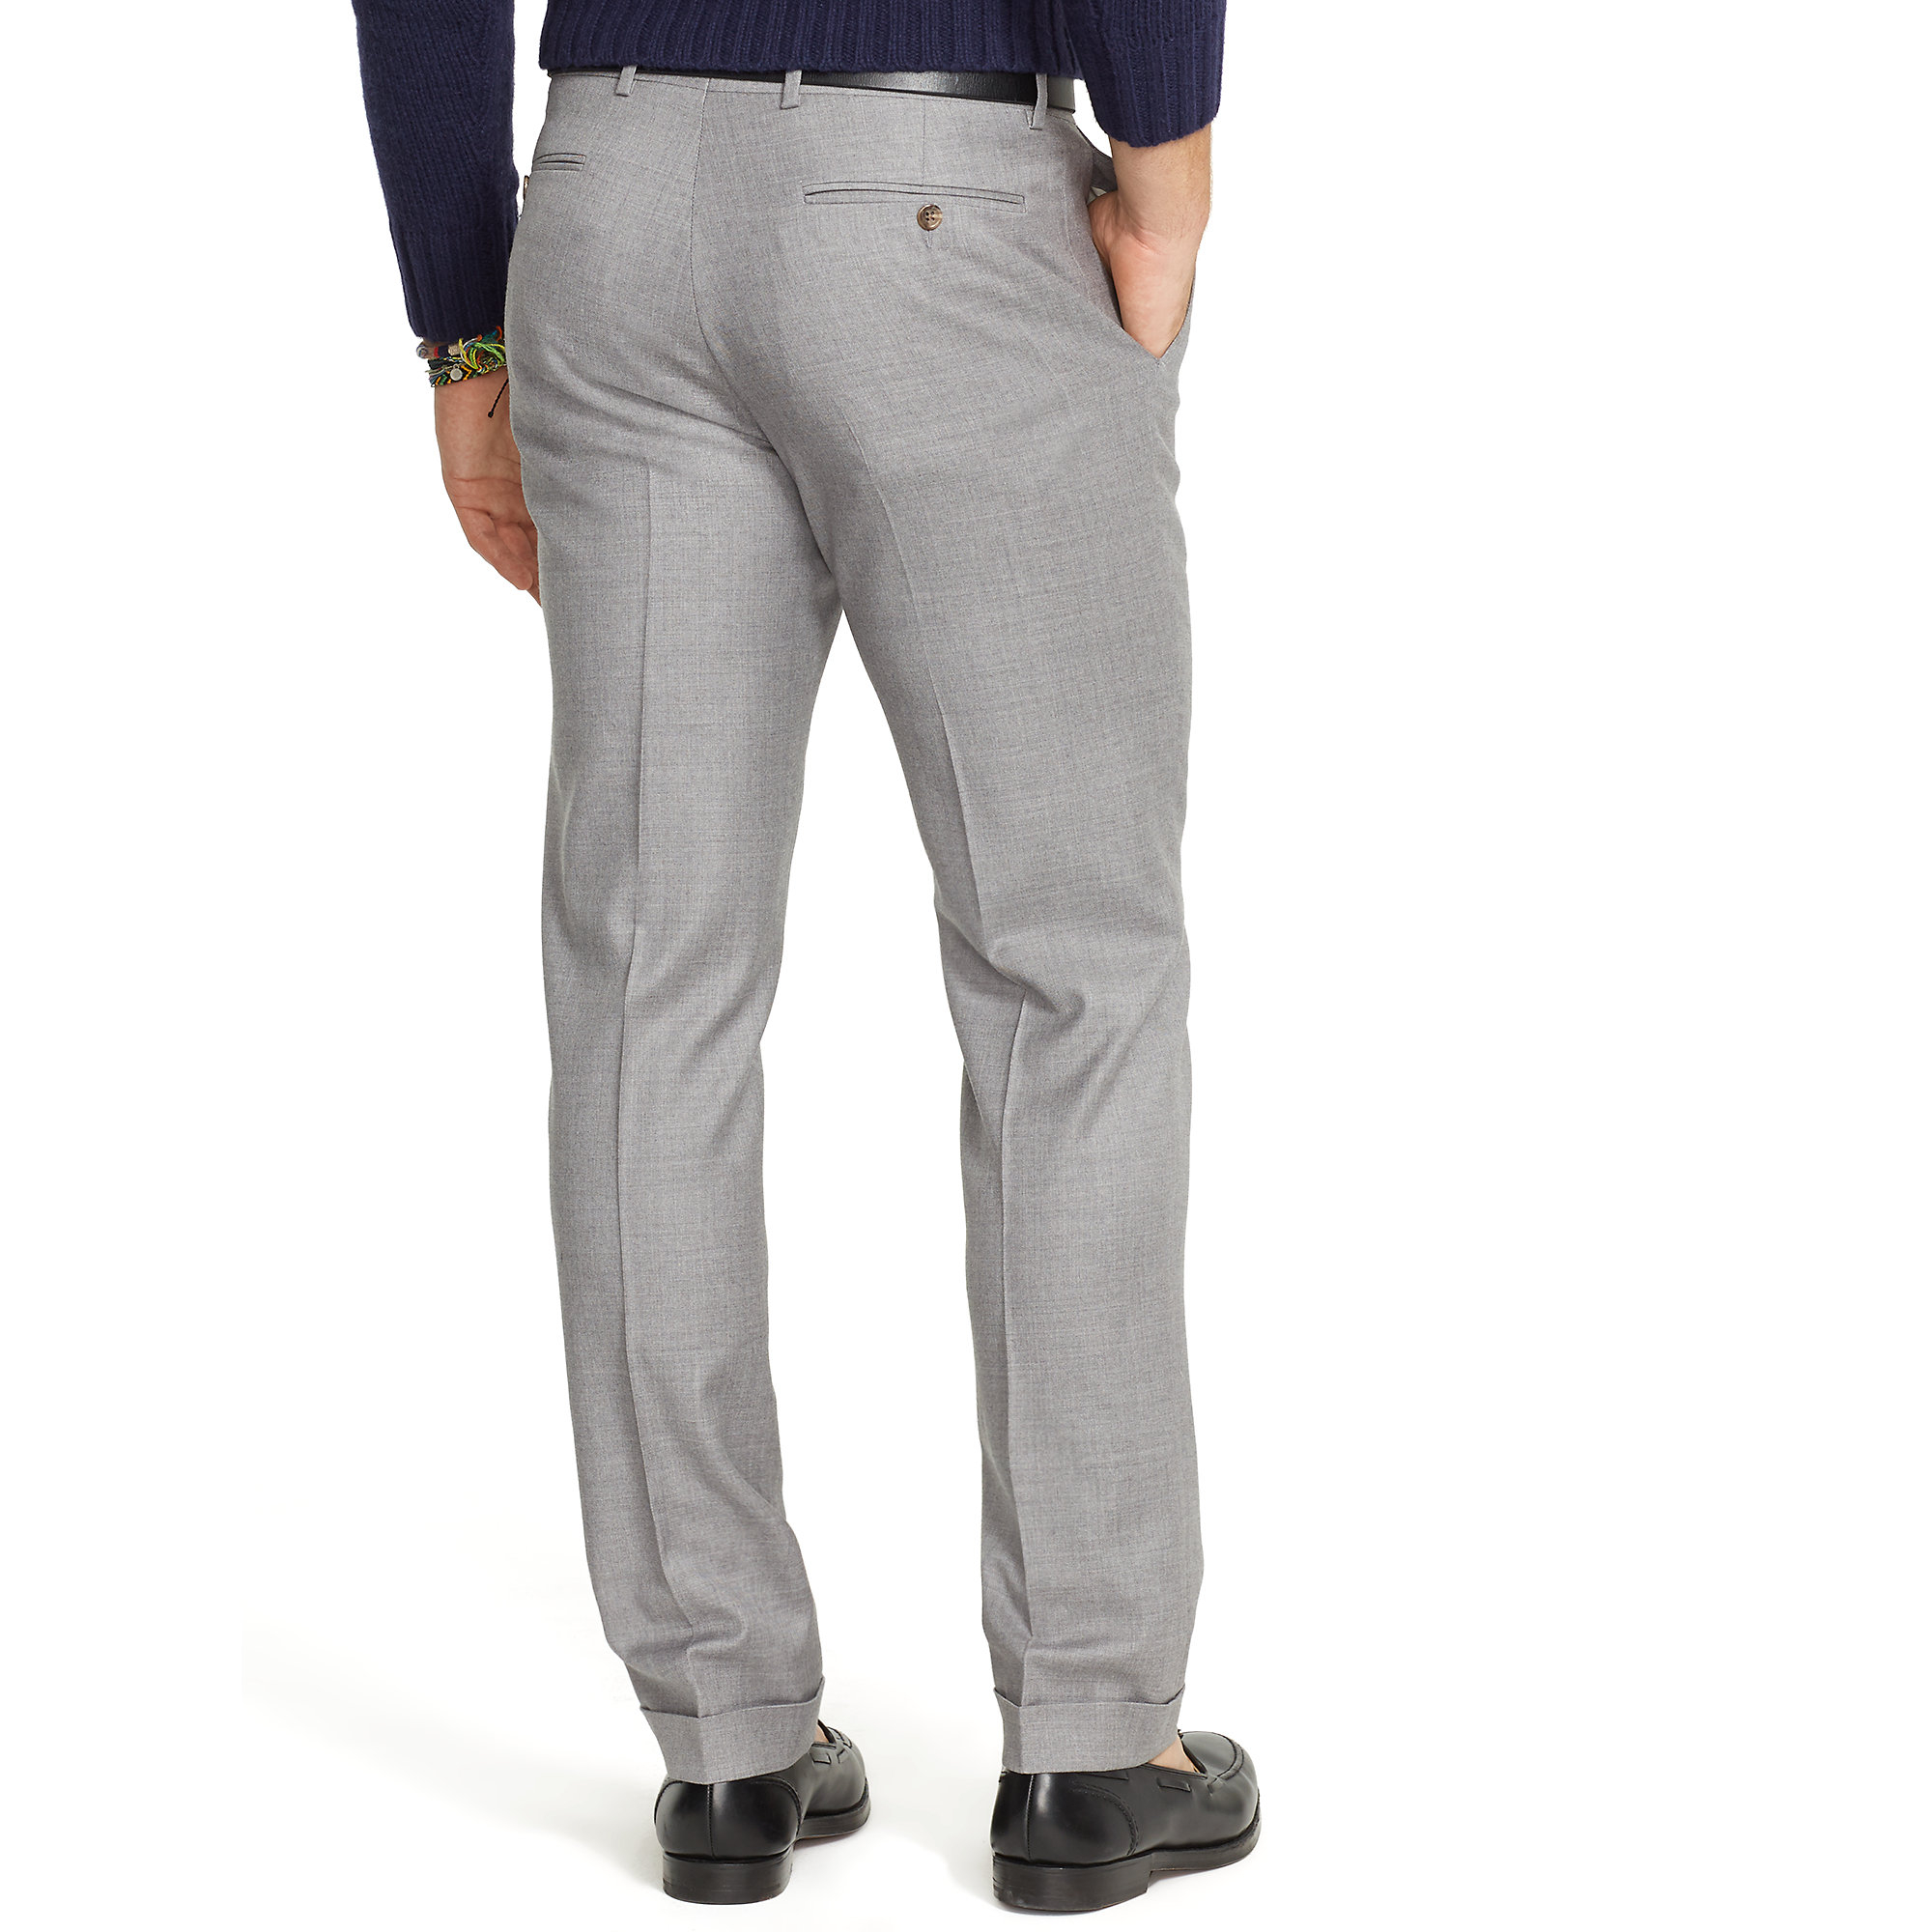 ralph lauren slim fit wool twill trouser in gray for men heather grey. Black Bedroom Furniture Sets. Home Design Ideas